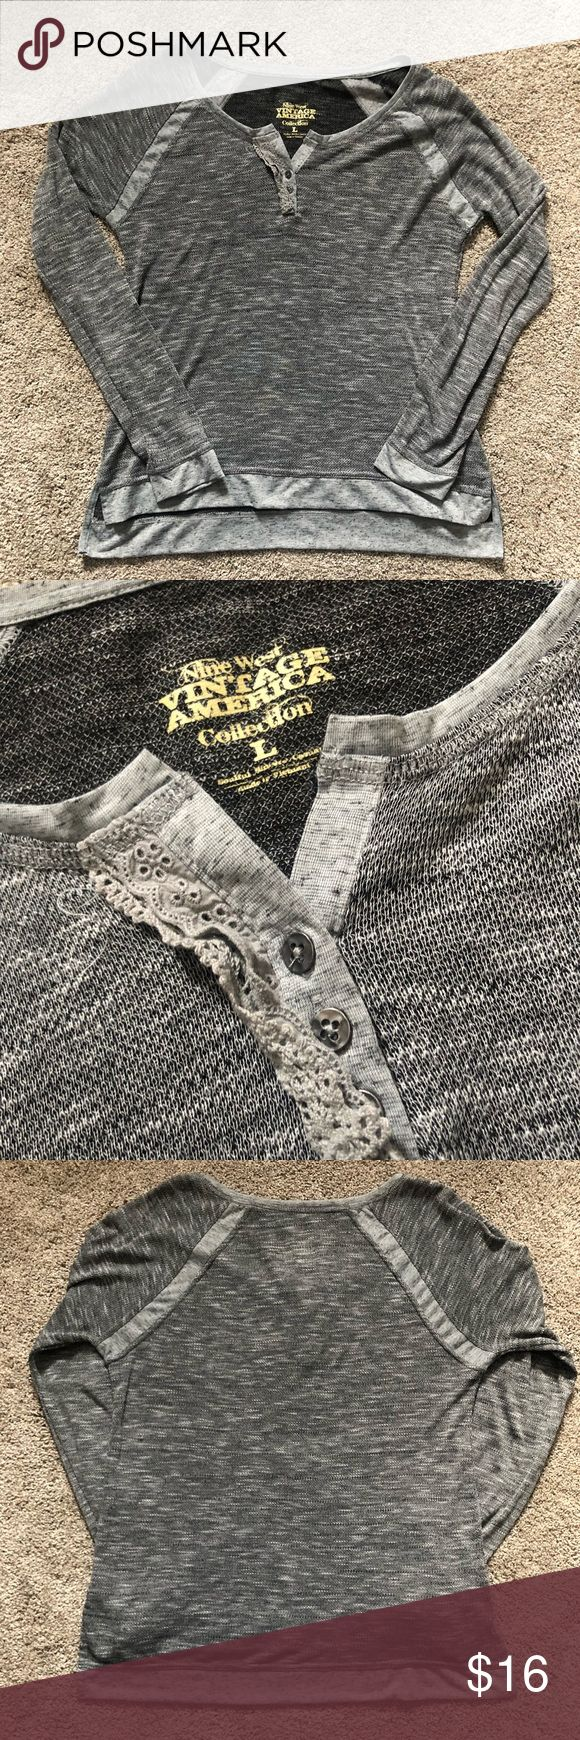 Nine West Collection Heather Gray Top Nine West Collection - Vintage America Heather Gray Top. Lightweight, sweatshirt material. High low style. Buttons at top - with some ruffles. Nine West Tops Tees - Long Sleeve